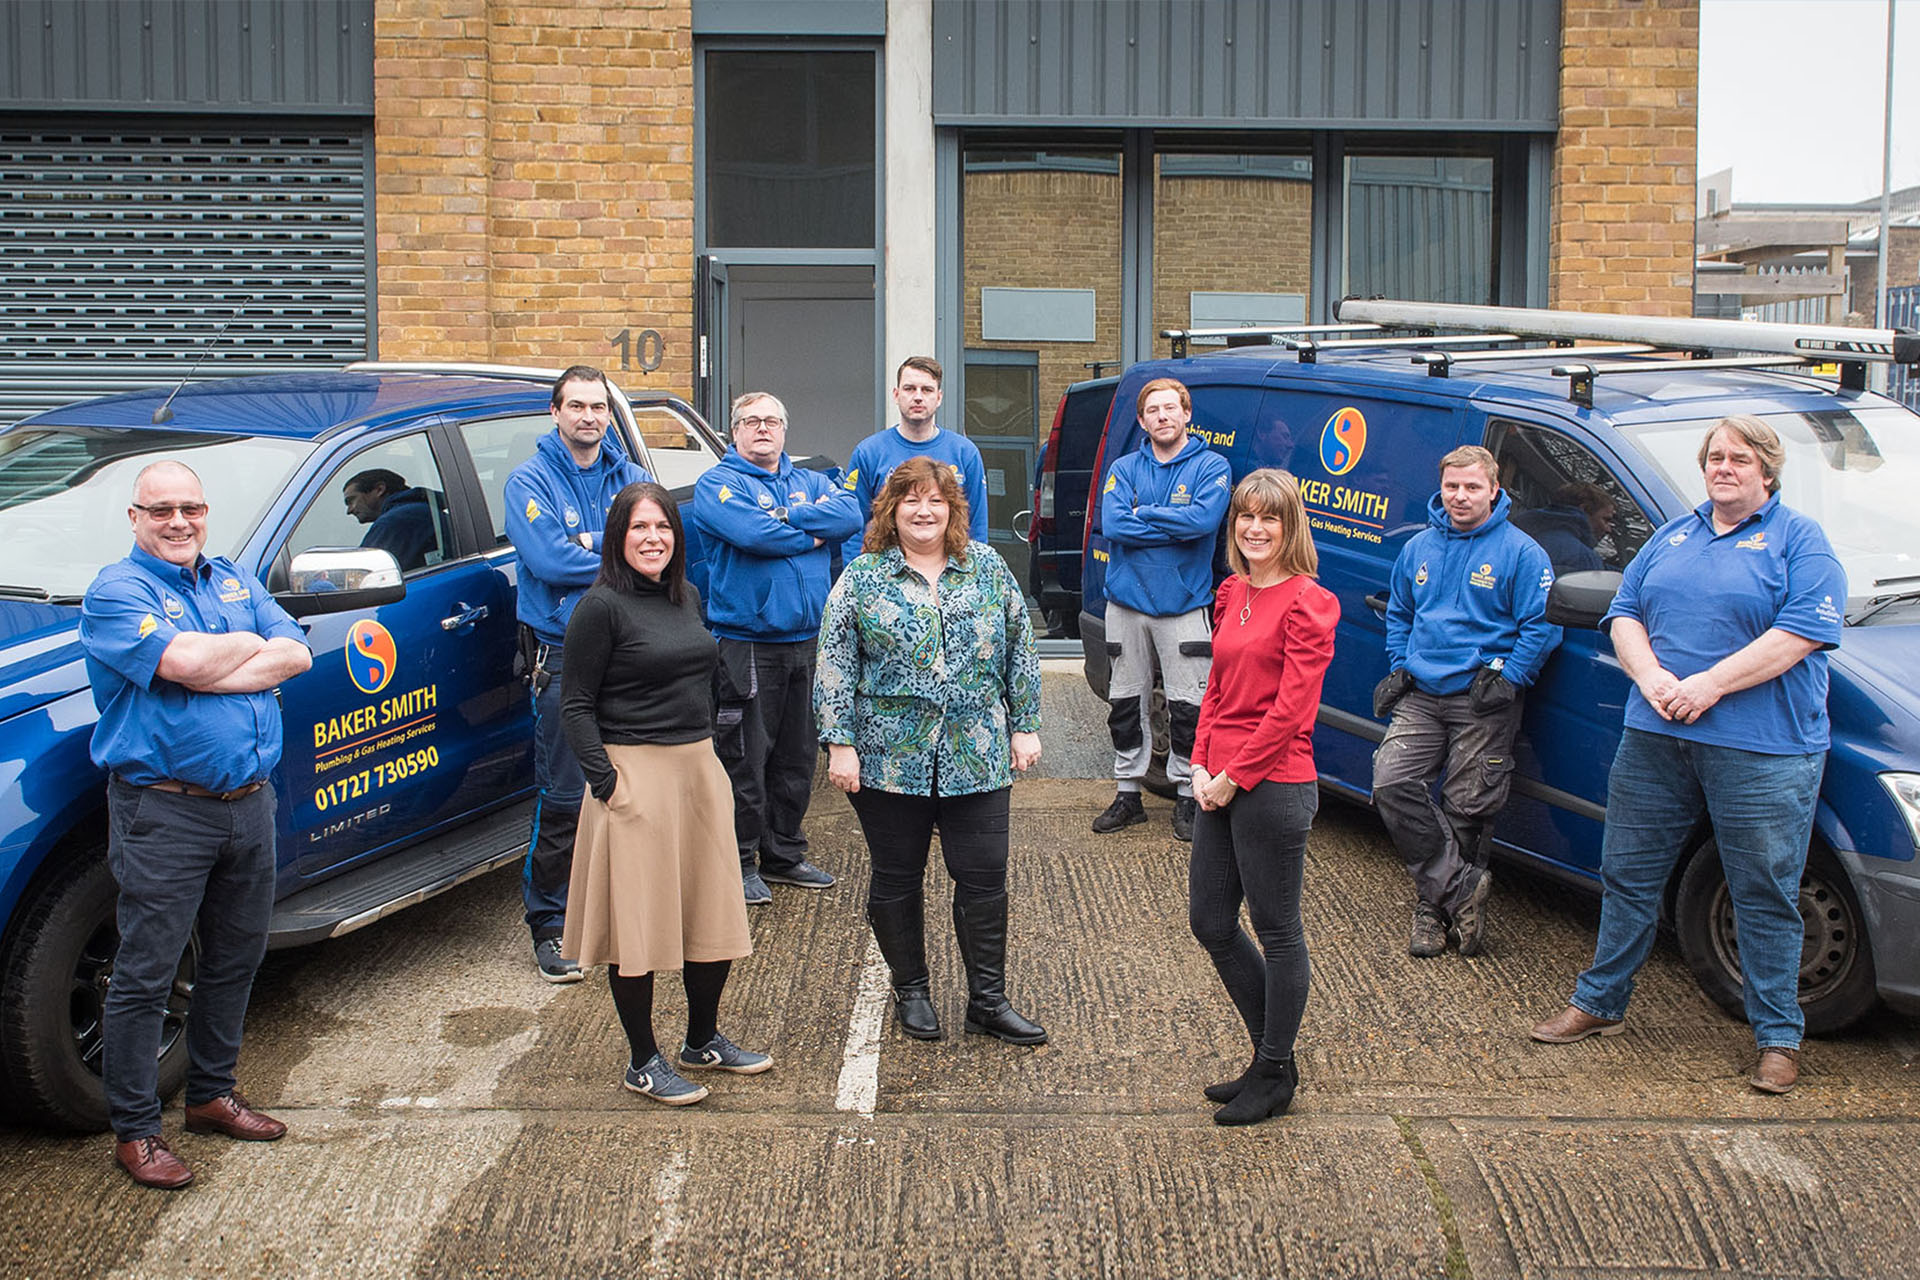 baker smith plumbers and heating engineers in st albans